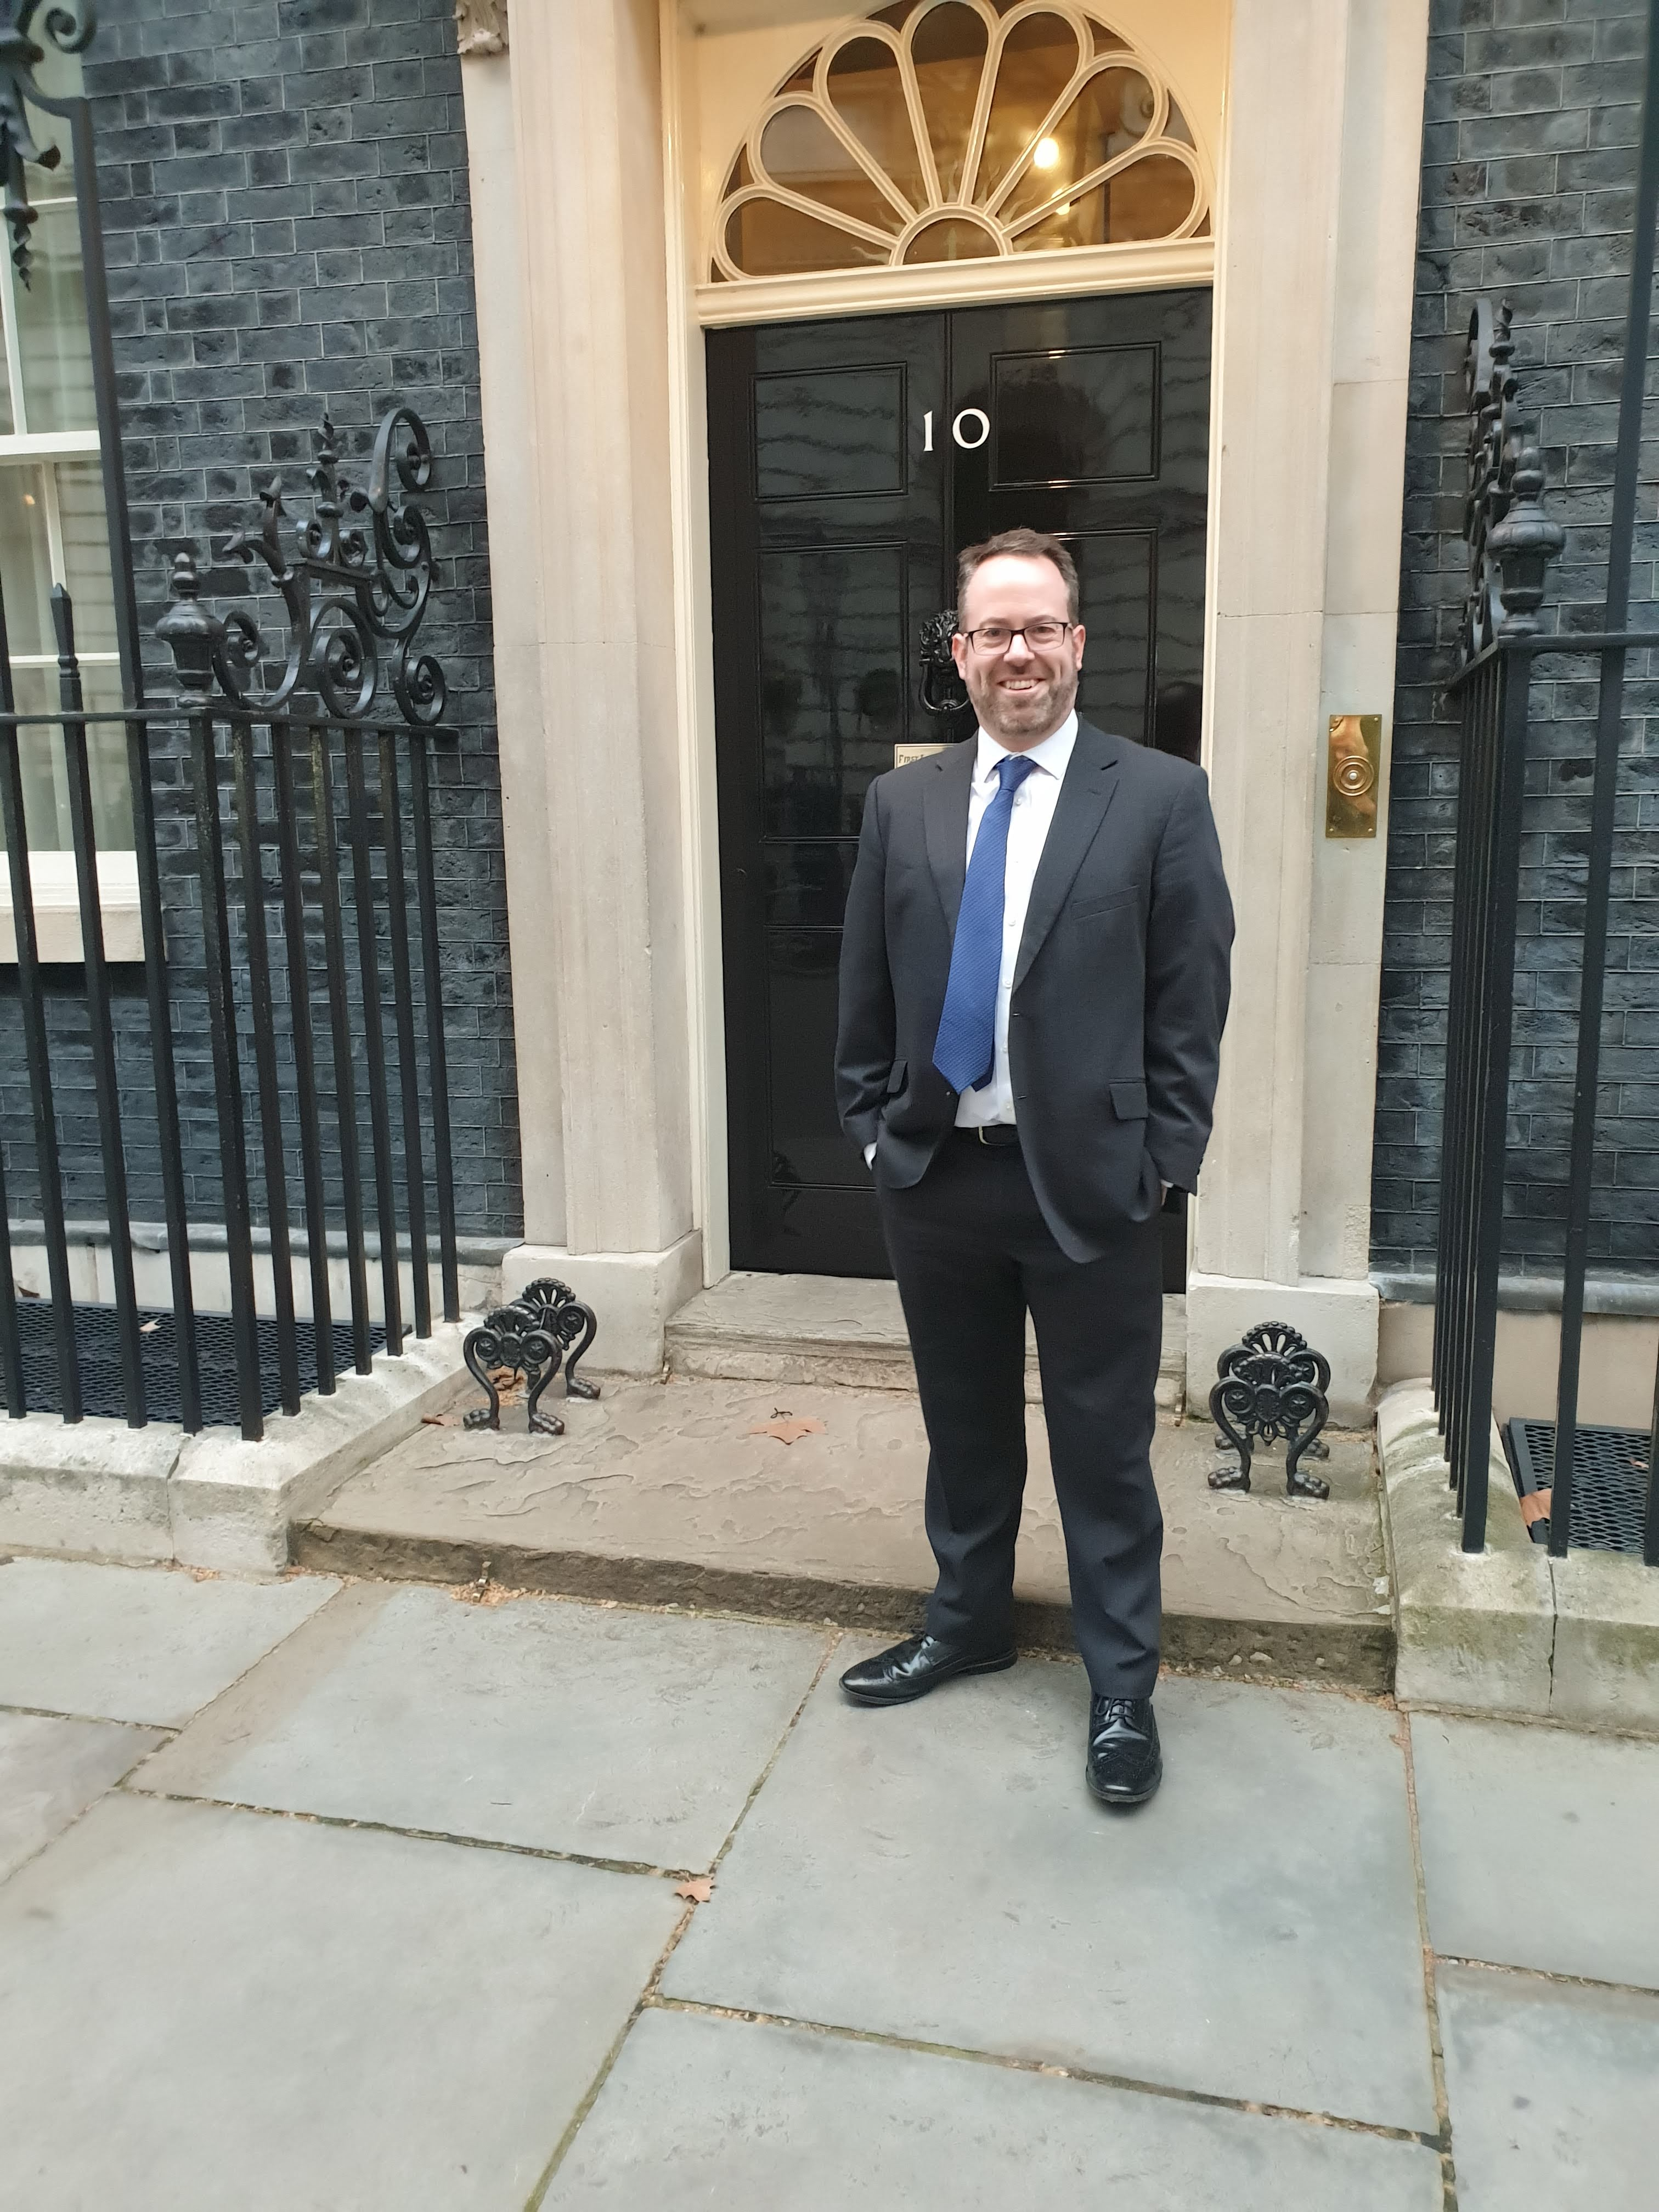 Richard Midson outside Downing Street after a reception with then Prime Minister Theresa May